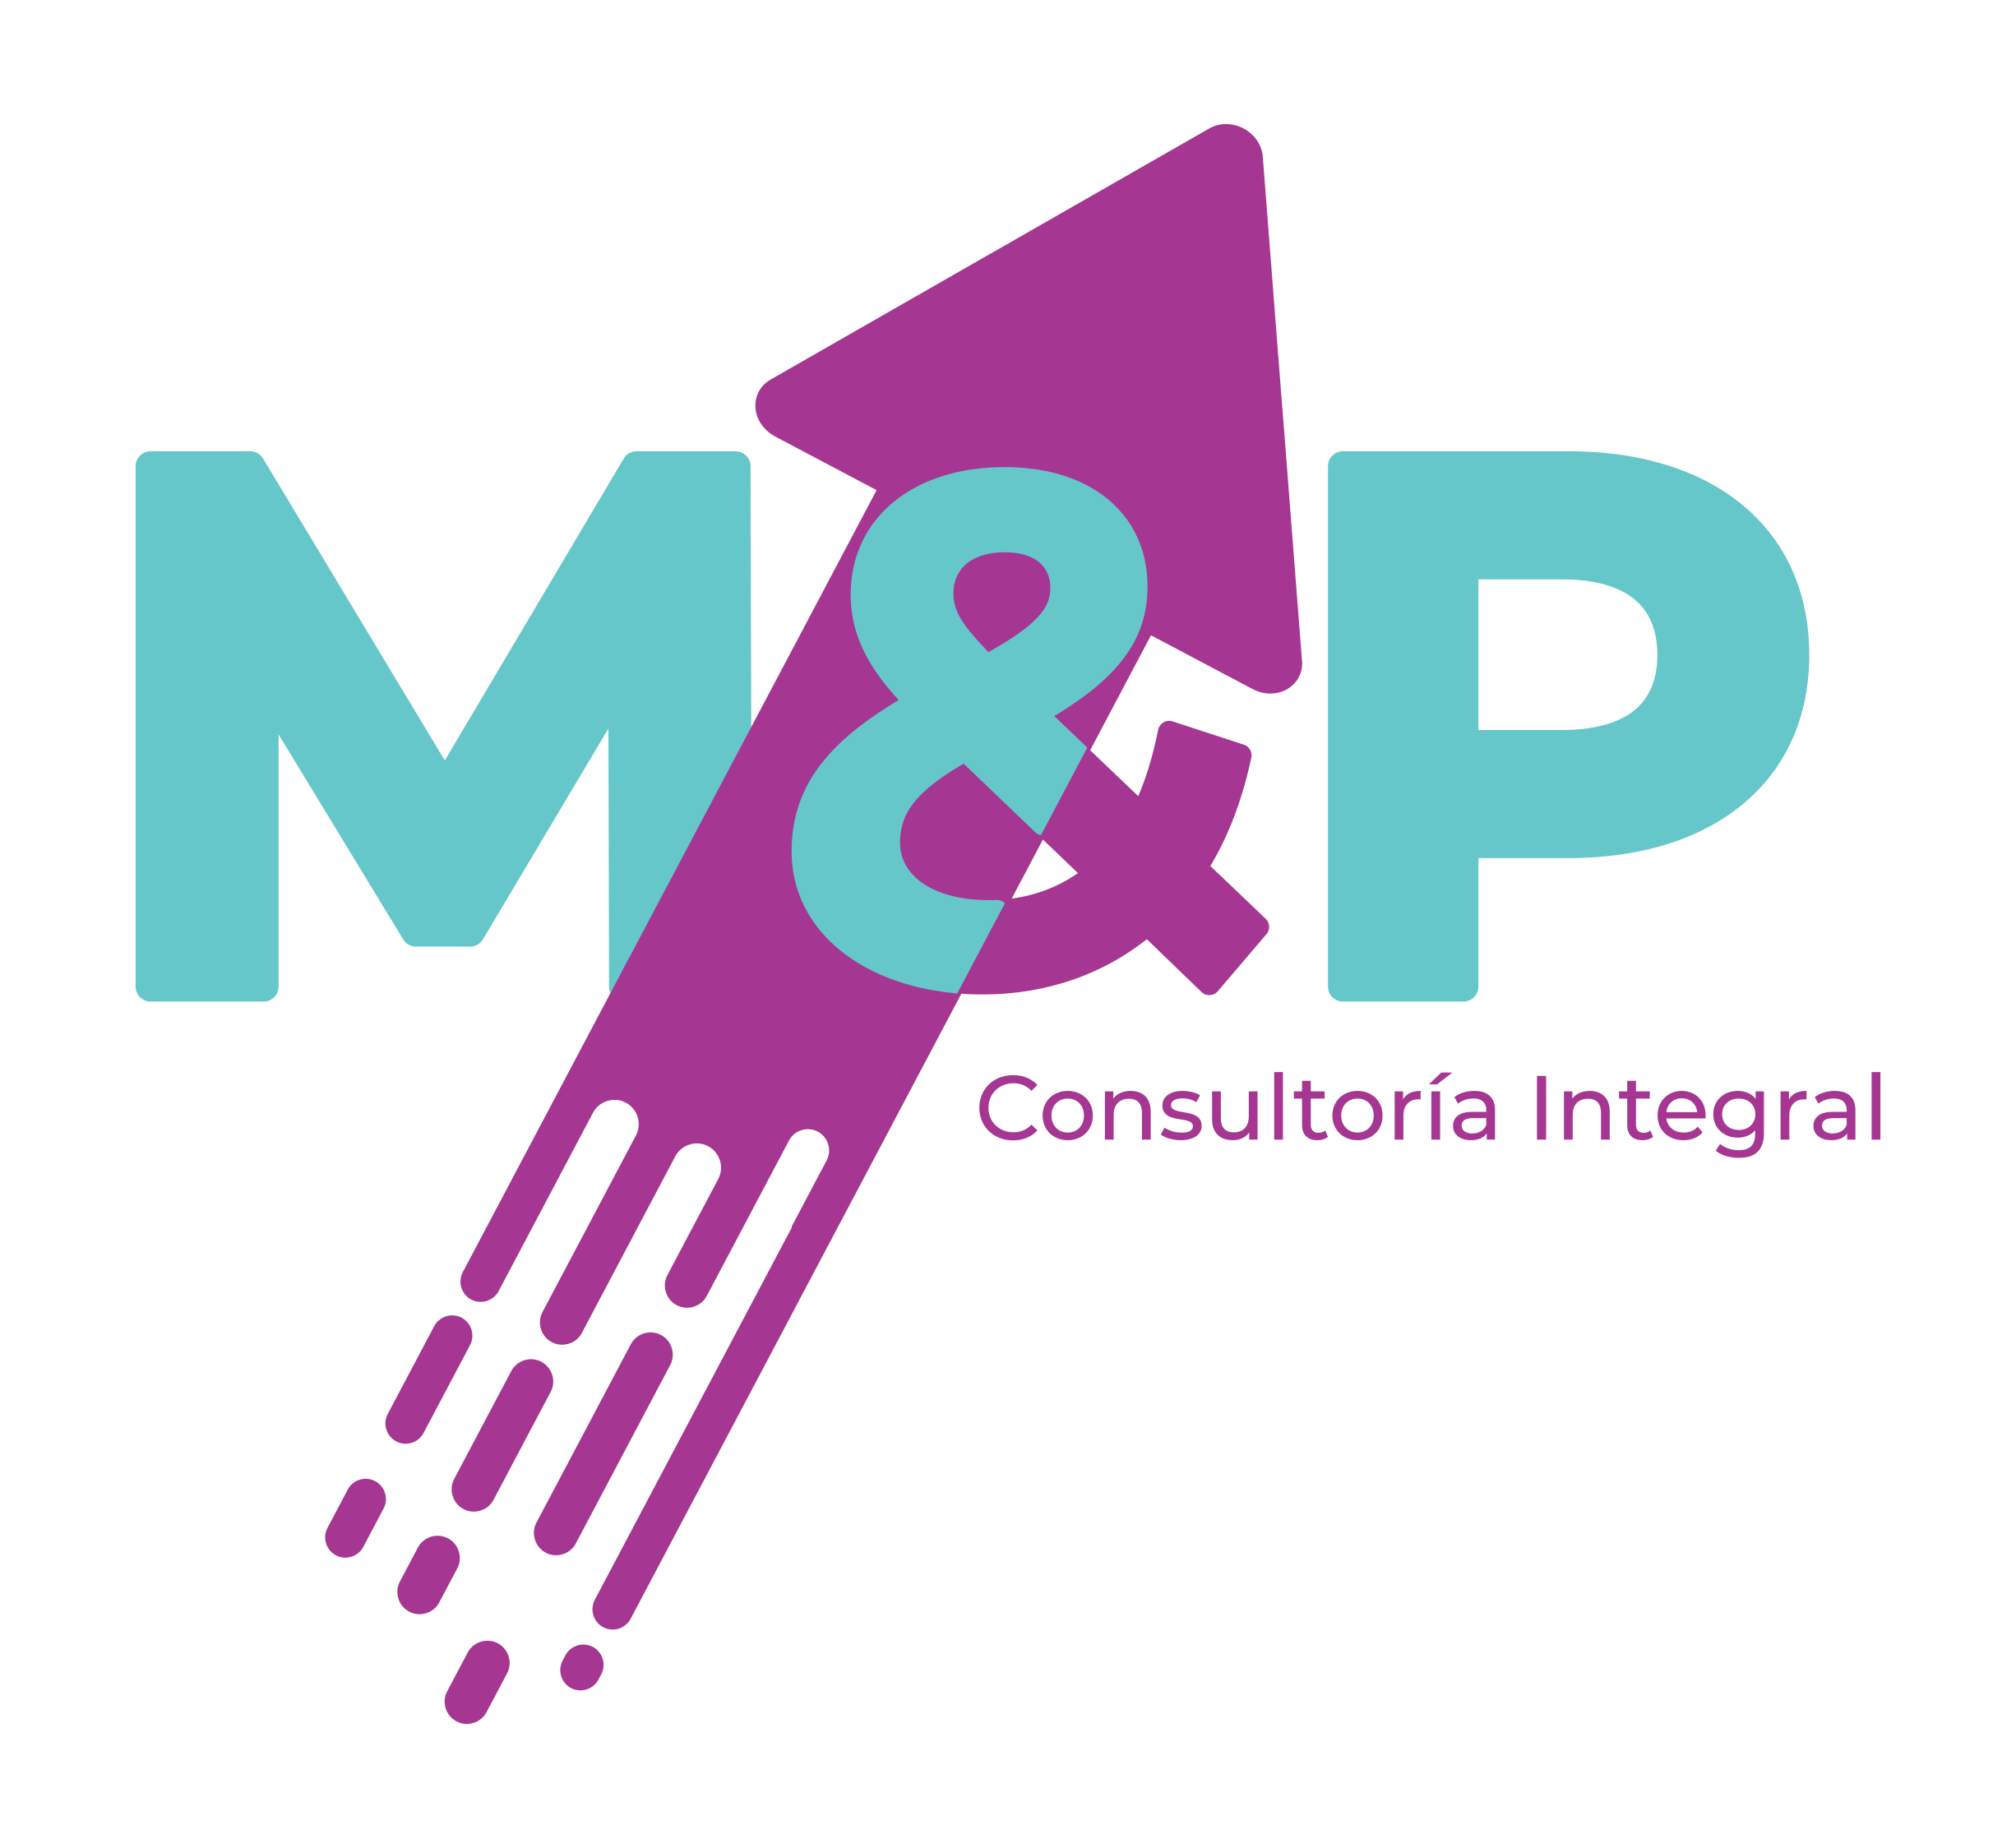 M&P consultoría integral